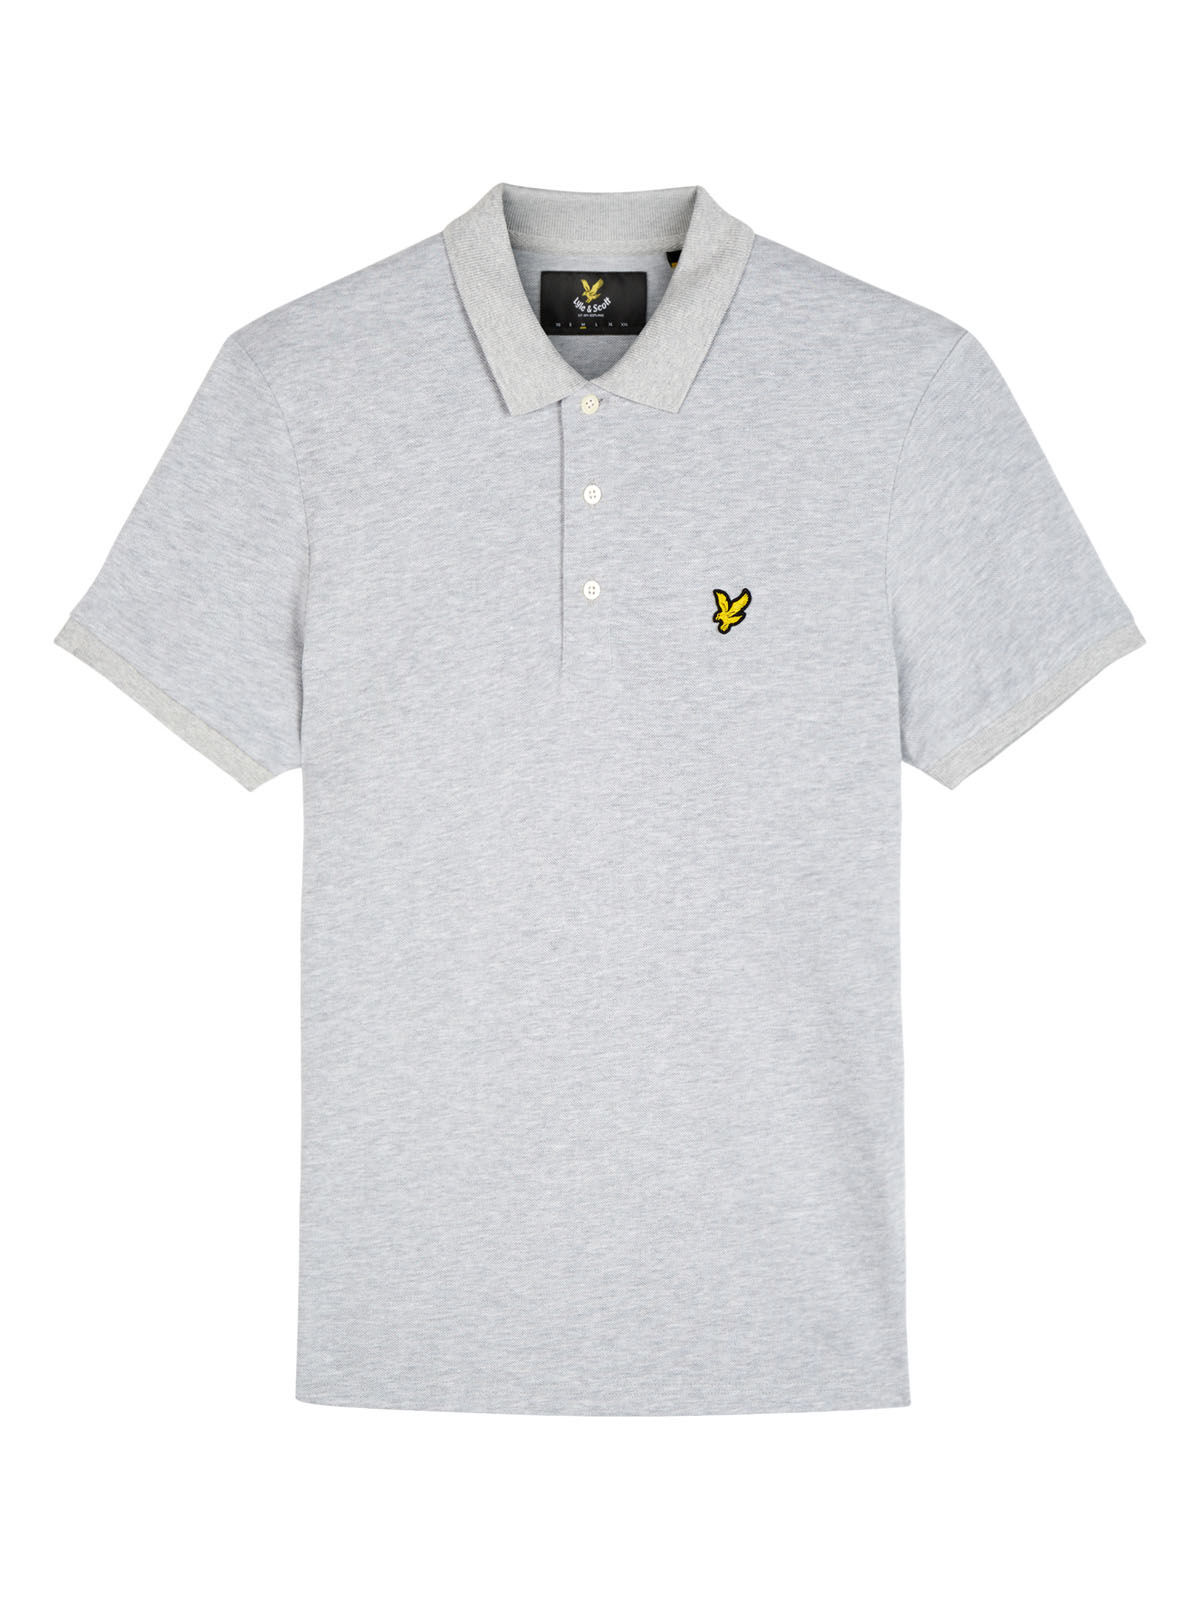 Lyle and Scott Light Grey Marl Marl Polo Shirt